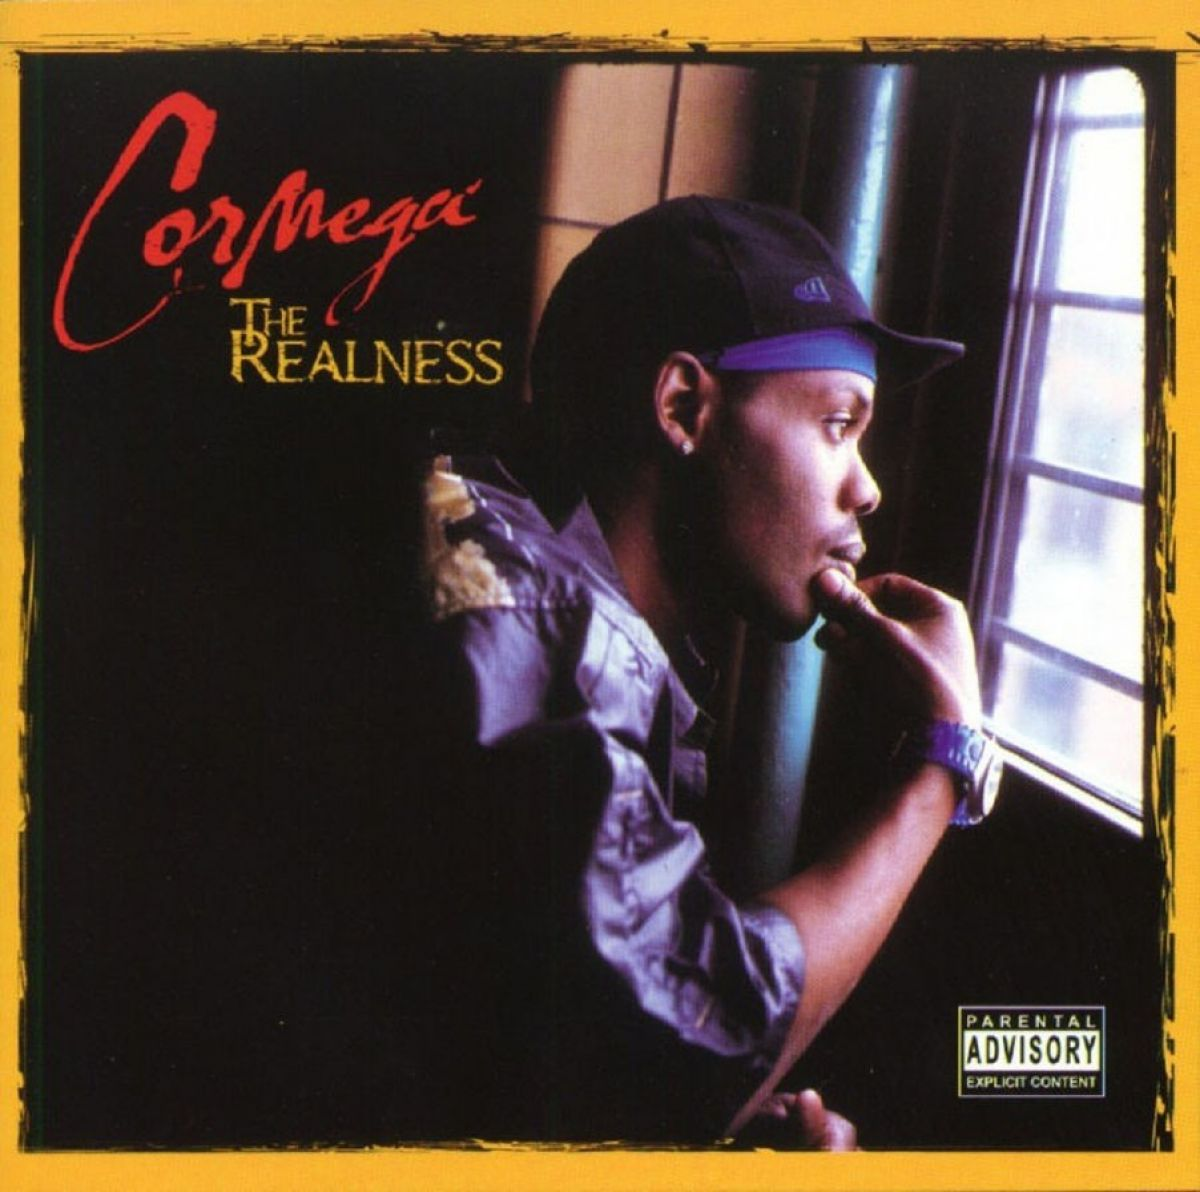 5617_cormega_the_realness_frontal